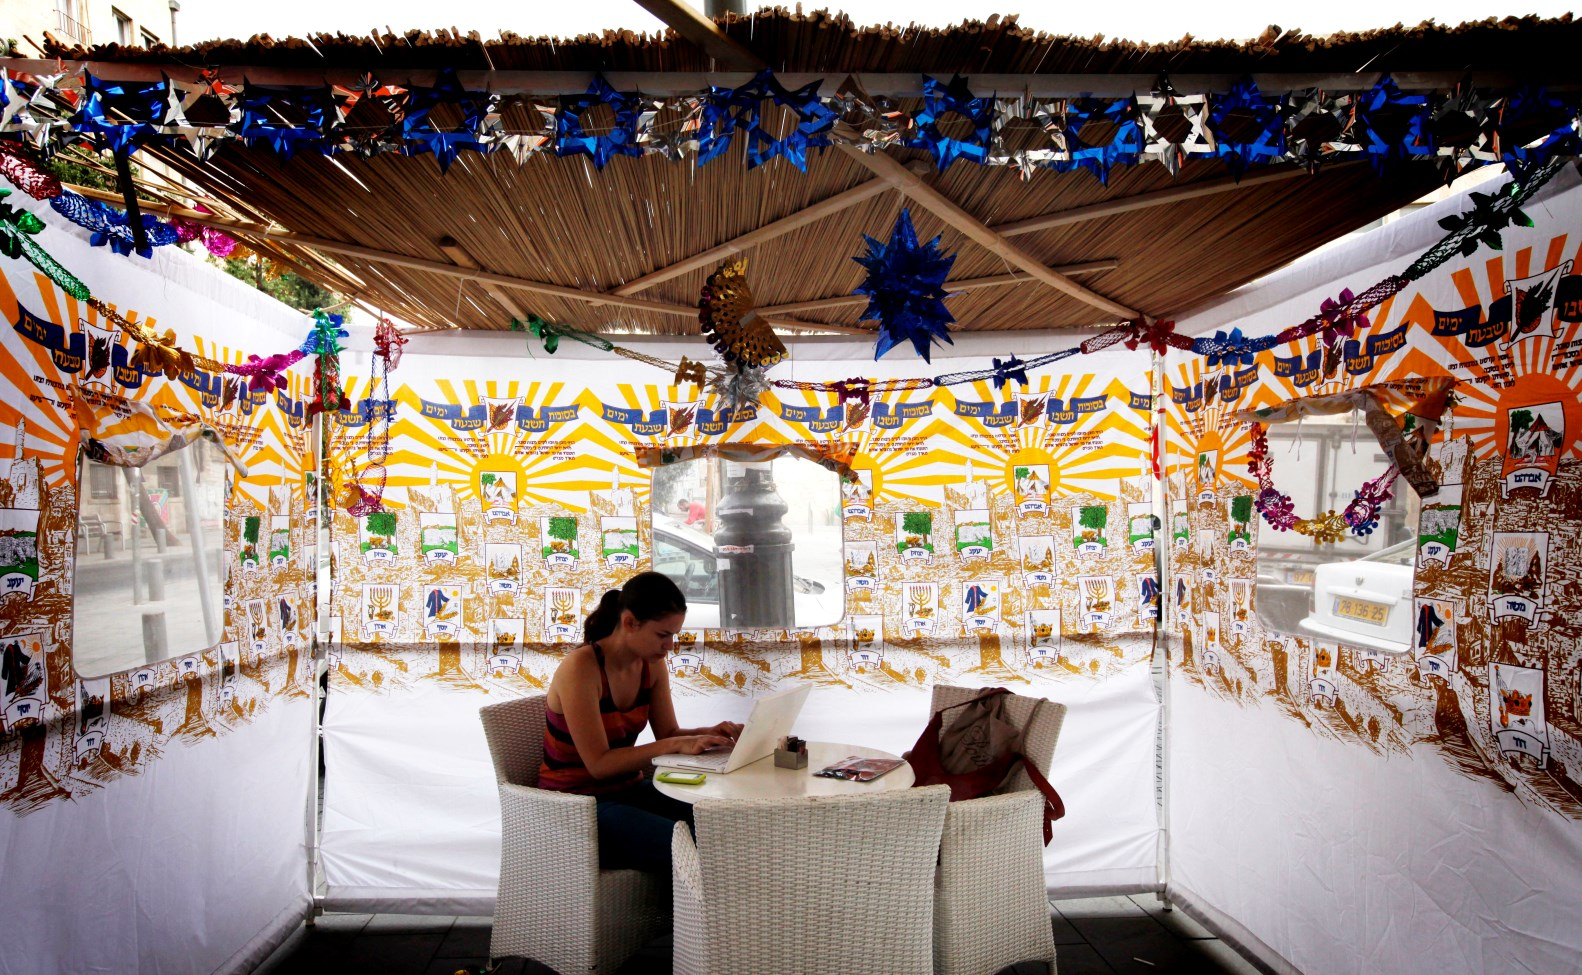 Trying to get some work done during Sukkot in Israel. Photo by Miriam Alster/FLASH90